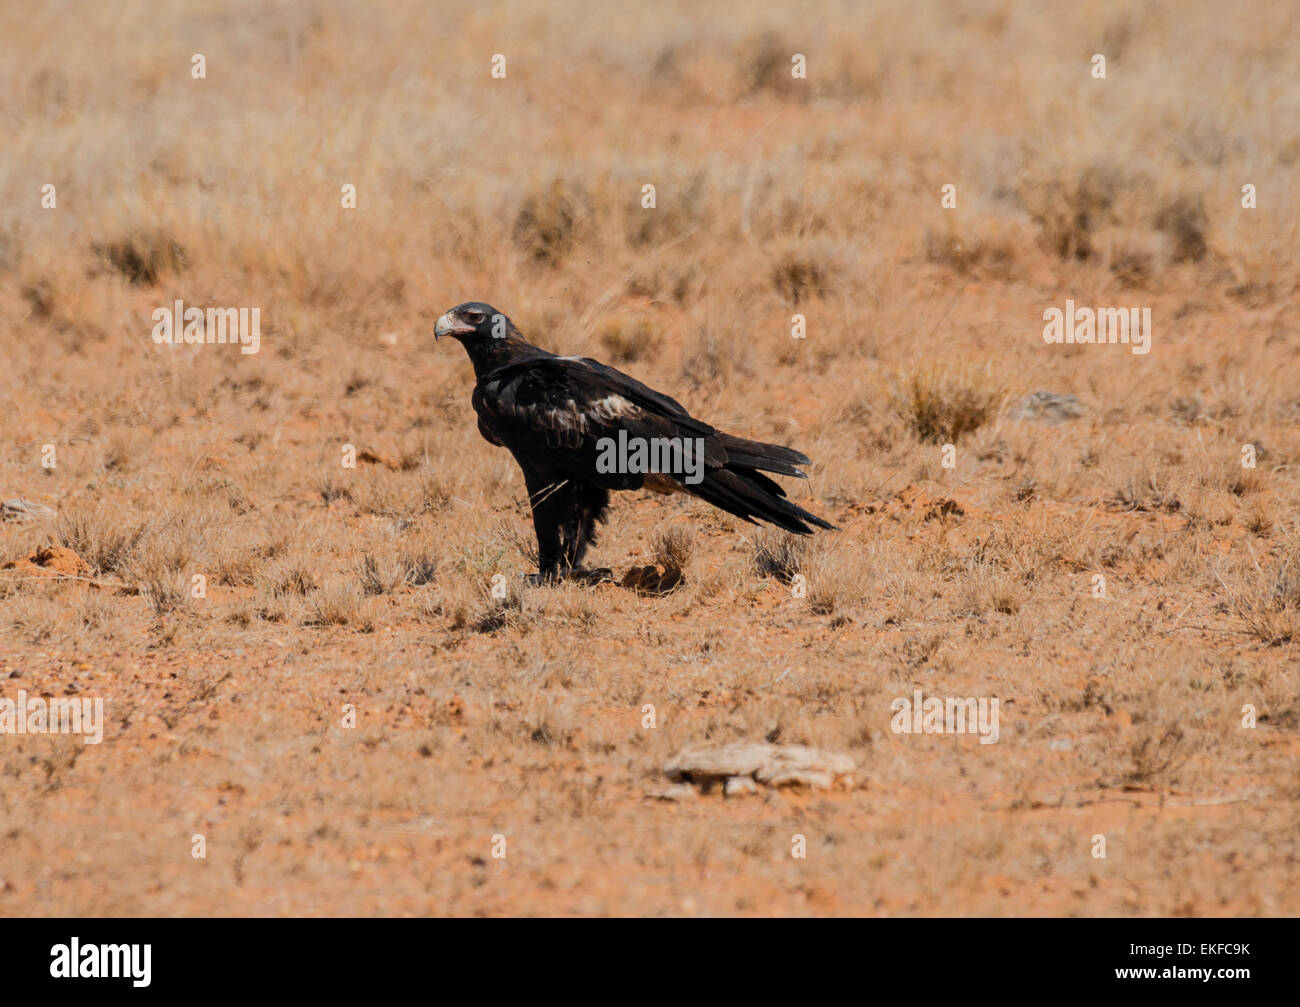 Wedge tailed eagle Aquila audax, perched on the ground, Winton, Queensland, Australia - Stock Image